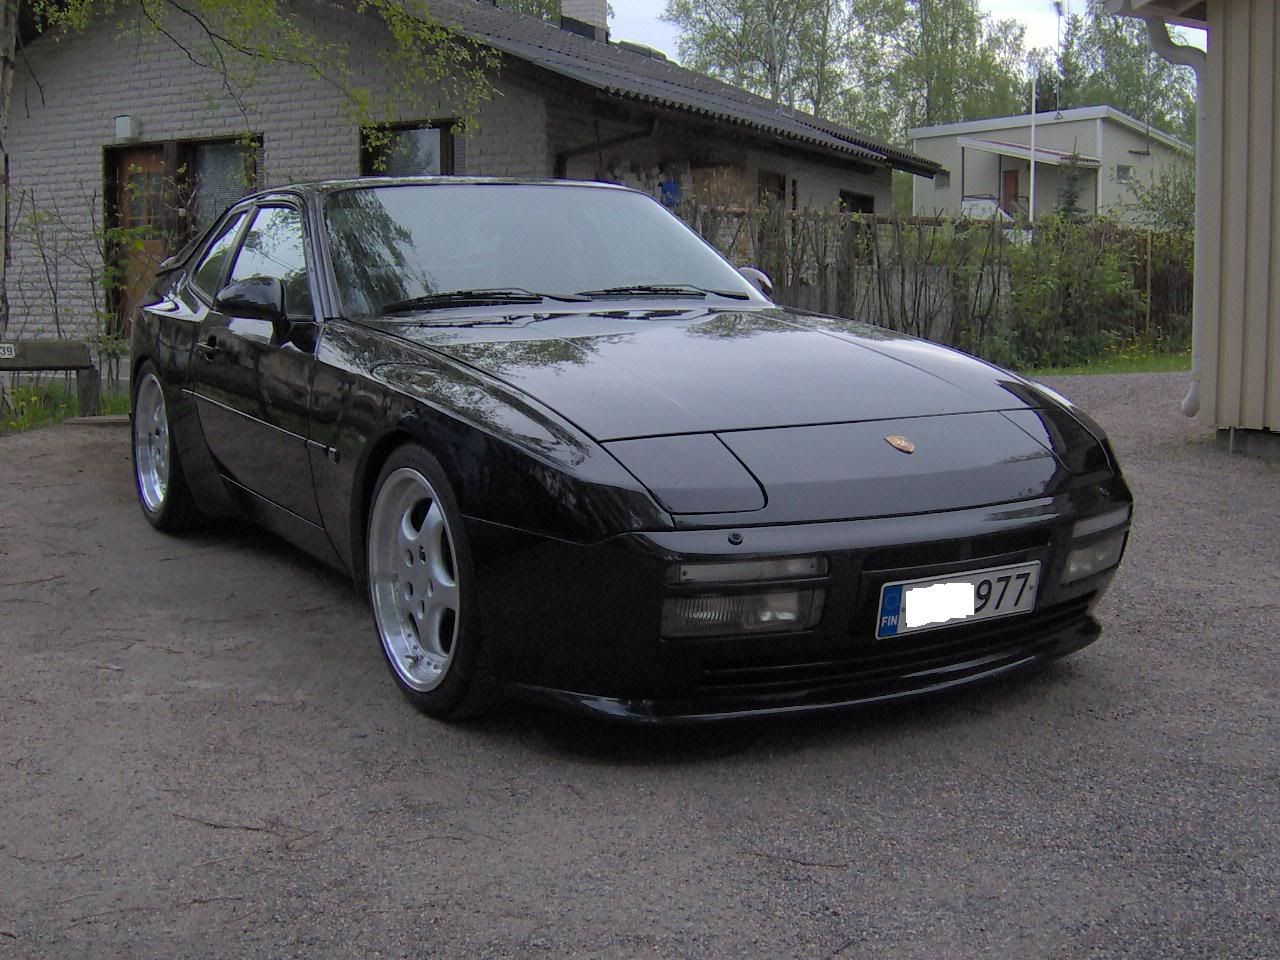 Front Splitter - WING KING! - Rennlist Discussion Forums